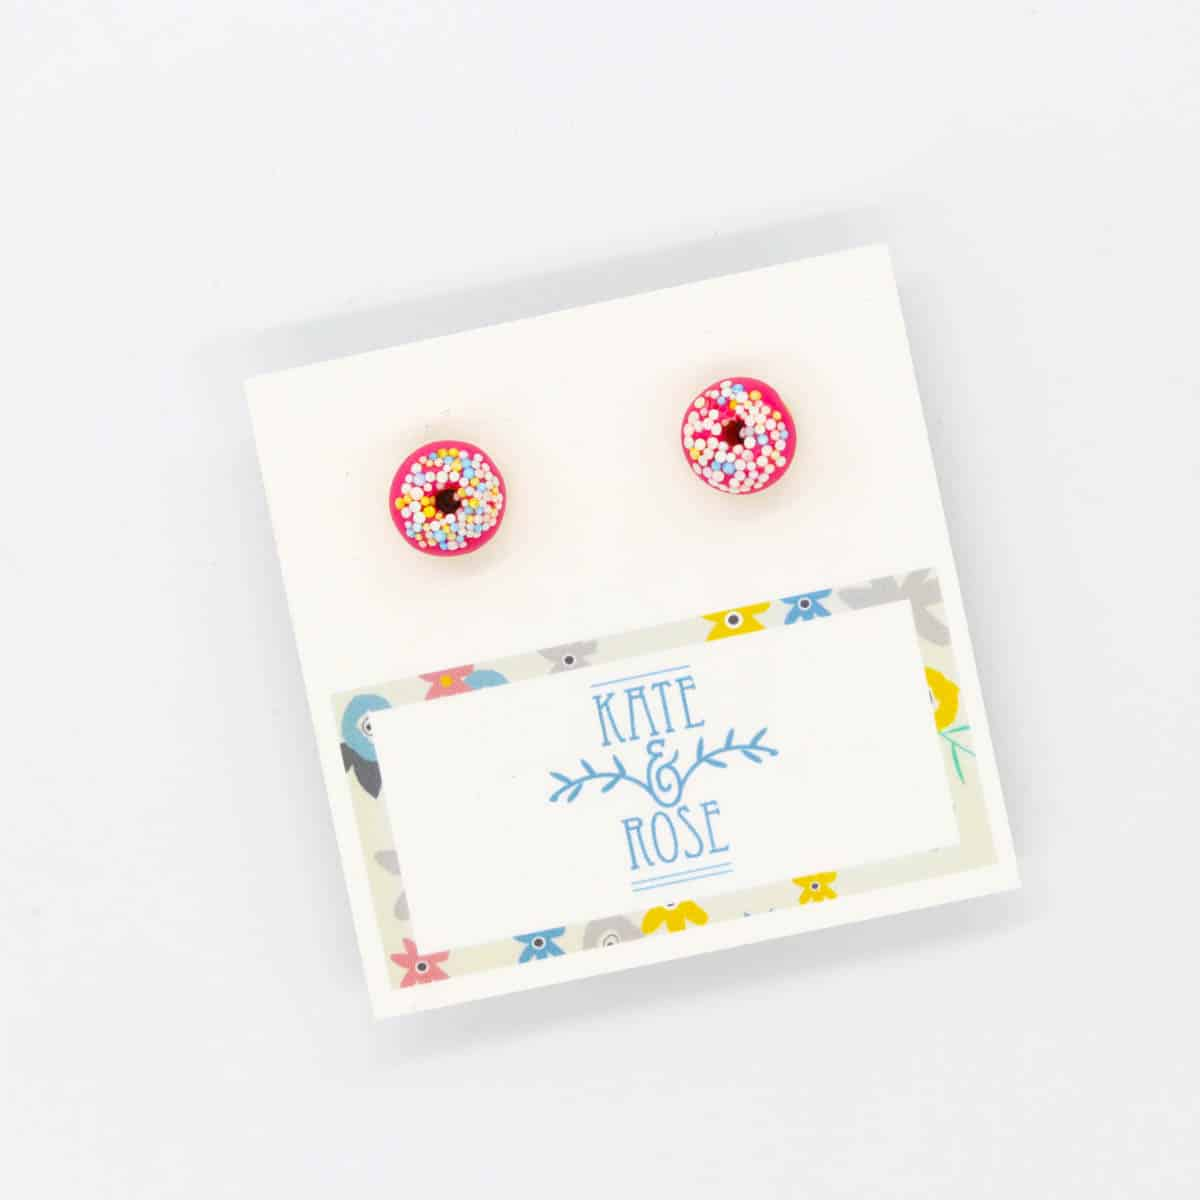 Pink Sprinkle Donut Earrings By Kate And Rose $14.95